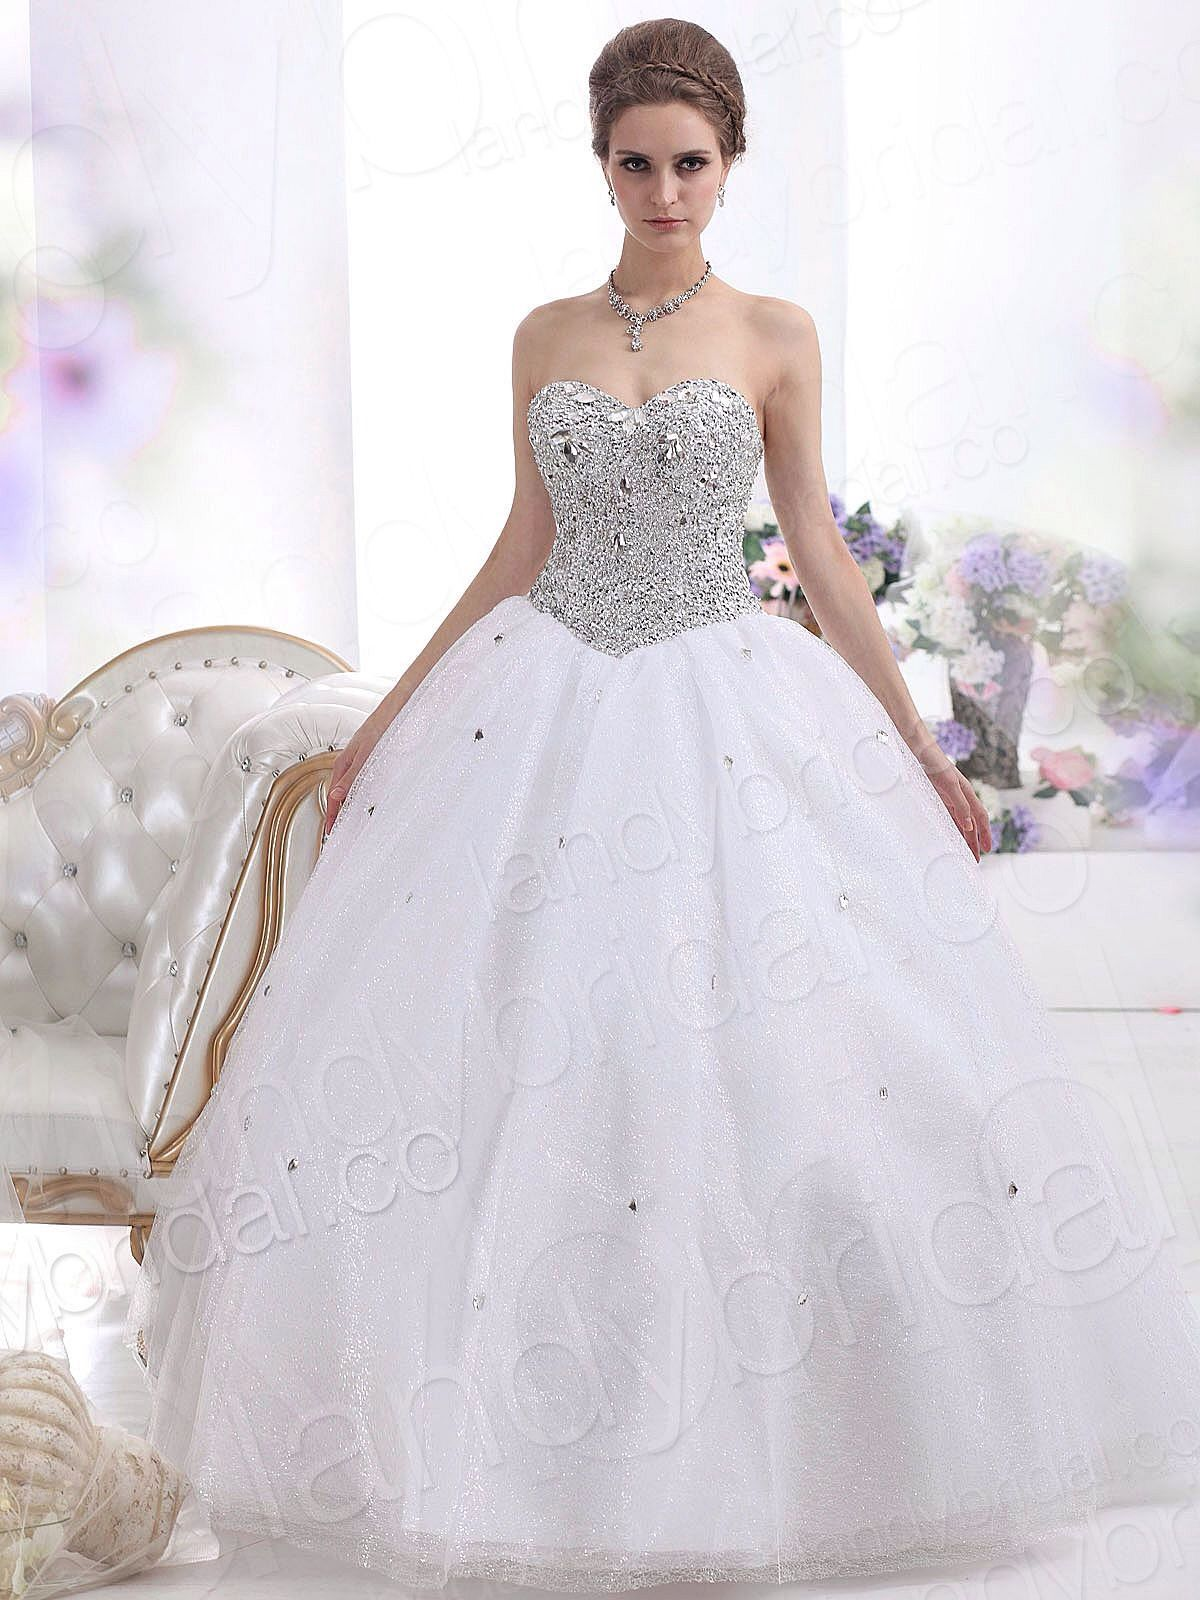 Image from http://sangmaestro.com/wp-content/uploads/2014/04/strapless-ball-gown-wedding-dresses-with-floor-length.jpg.